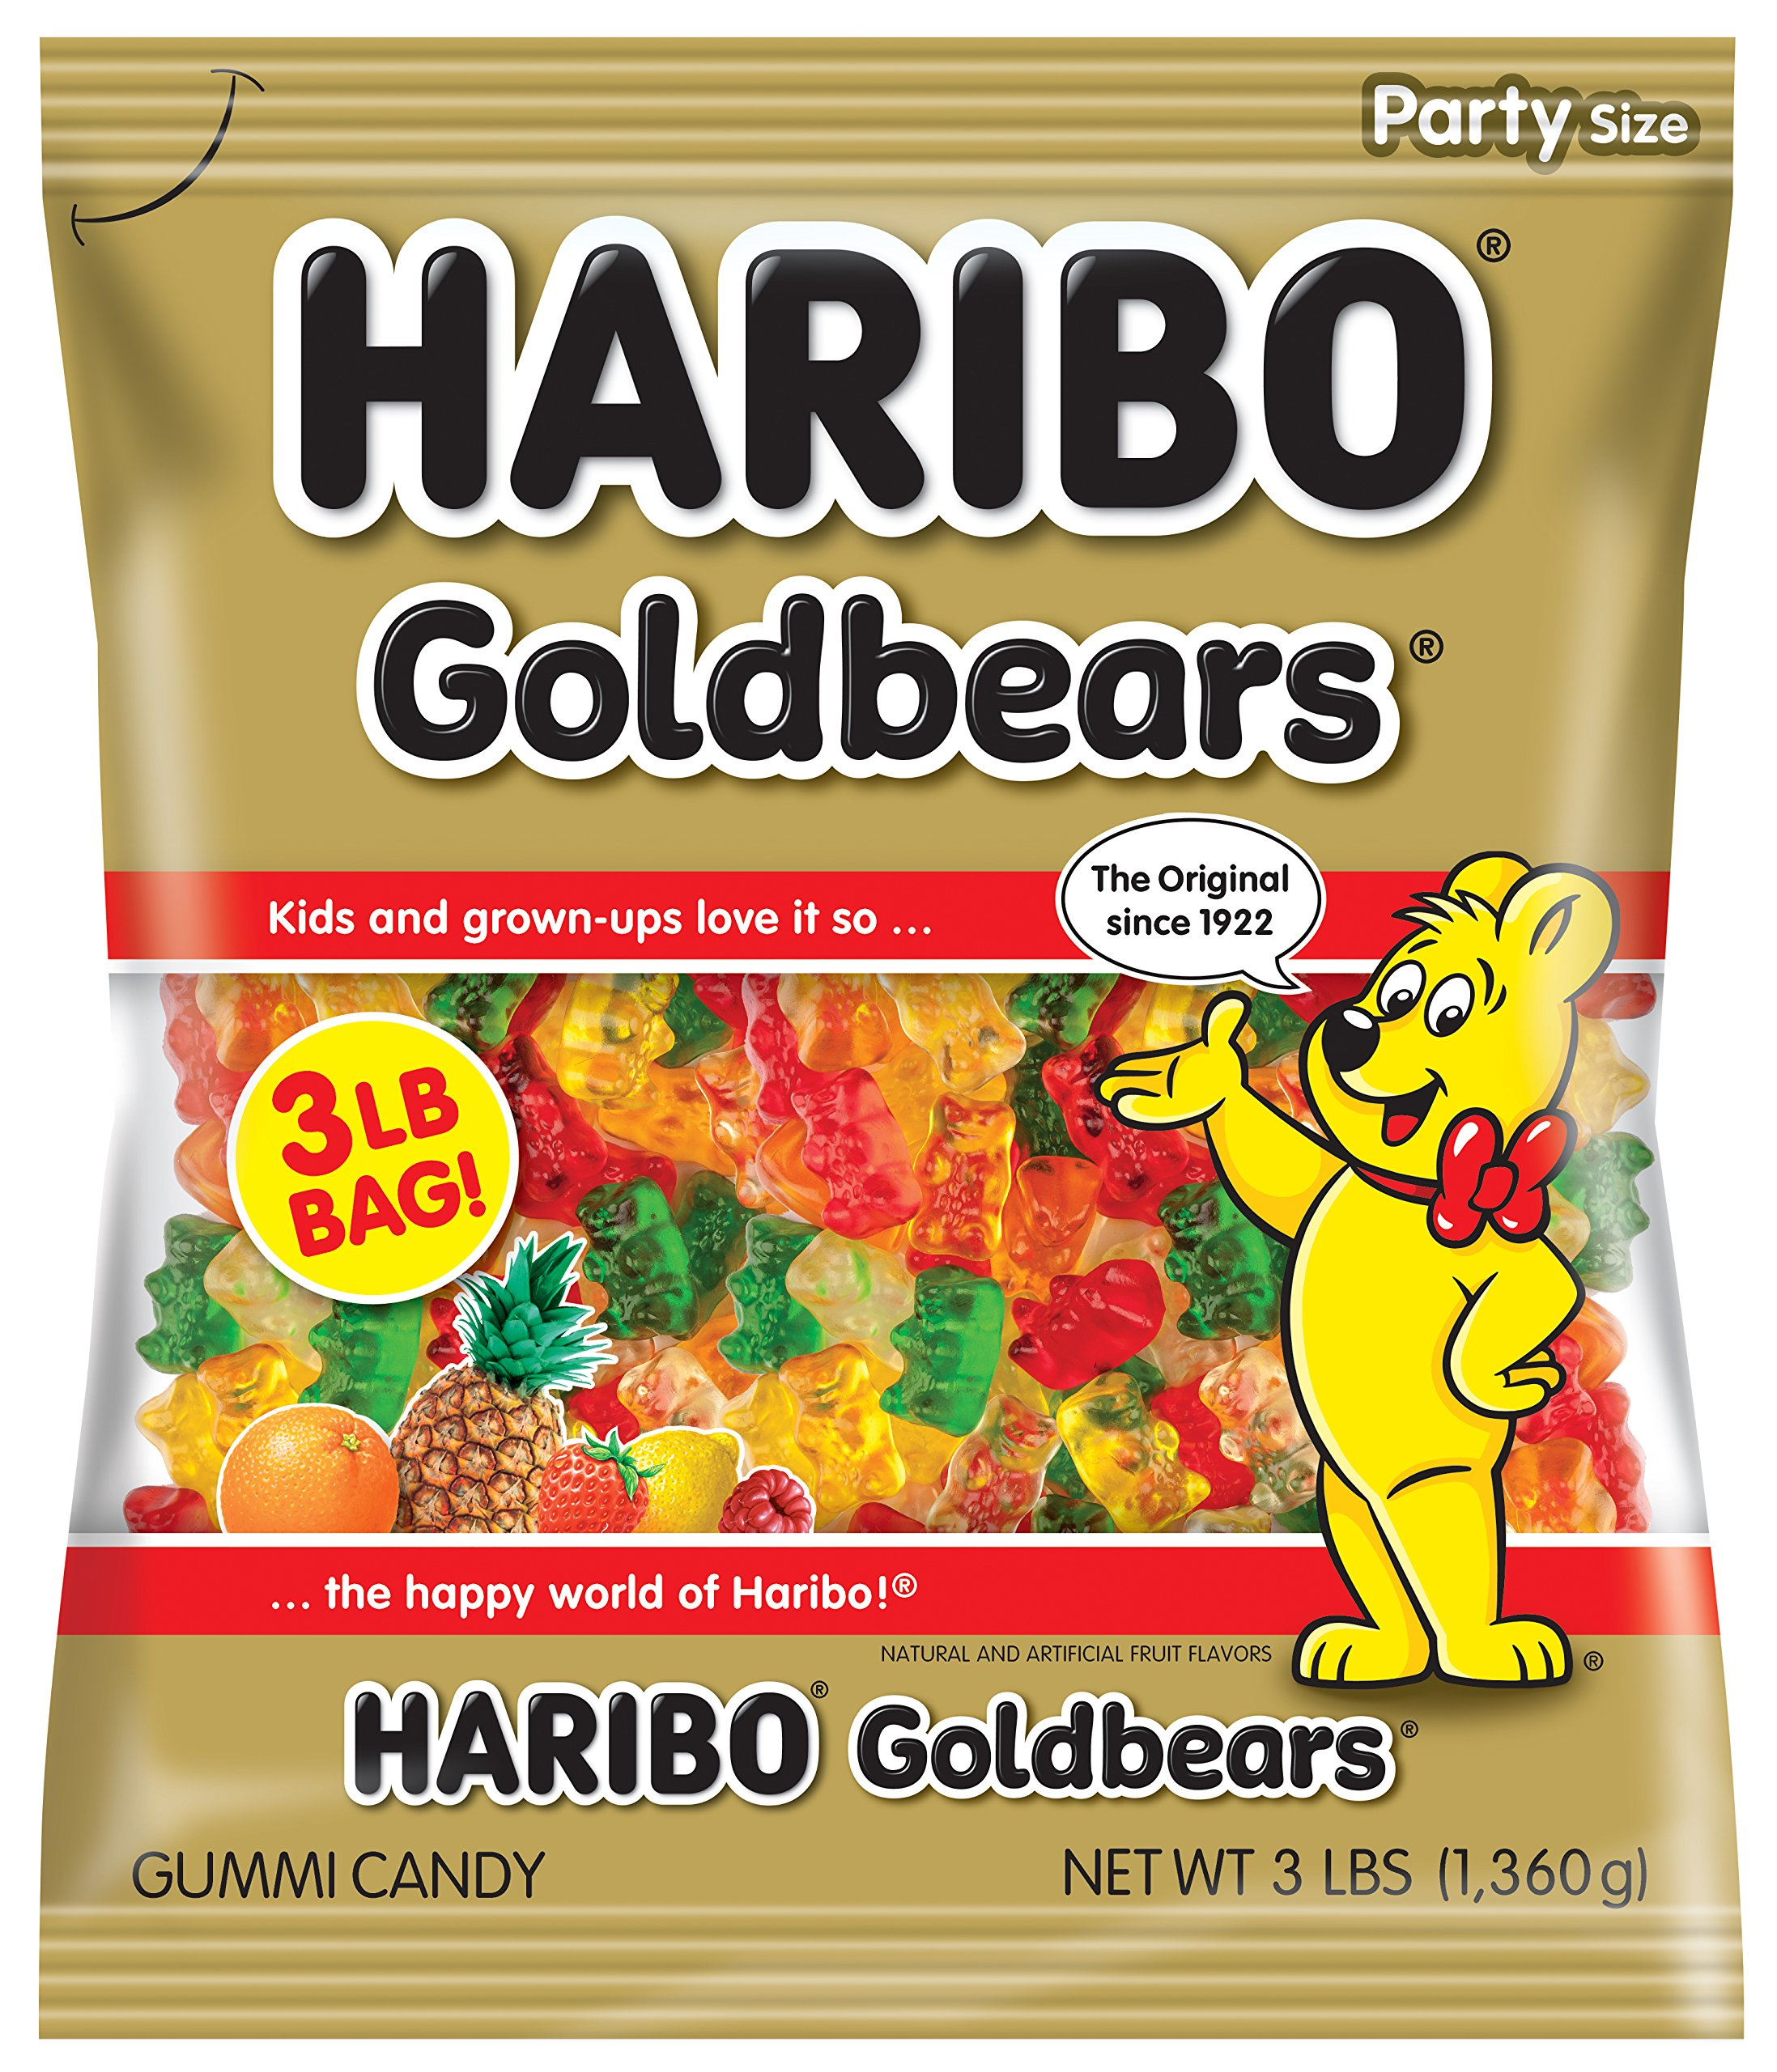 Haribo Gummi Candy, Goldbears Gummy Candy, 48 Ounce (Pack of 4) by Haribo